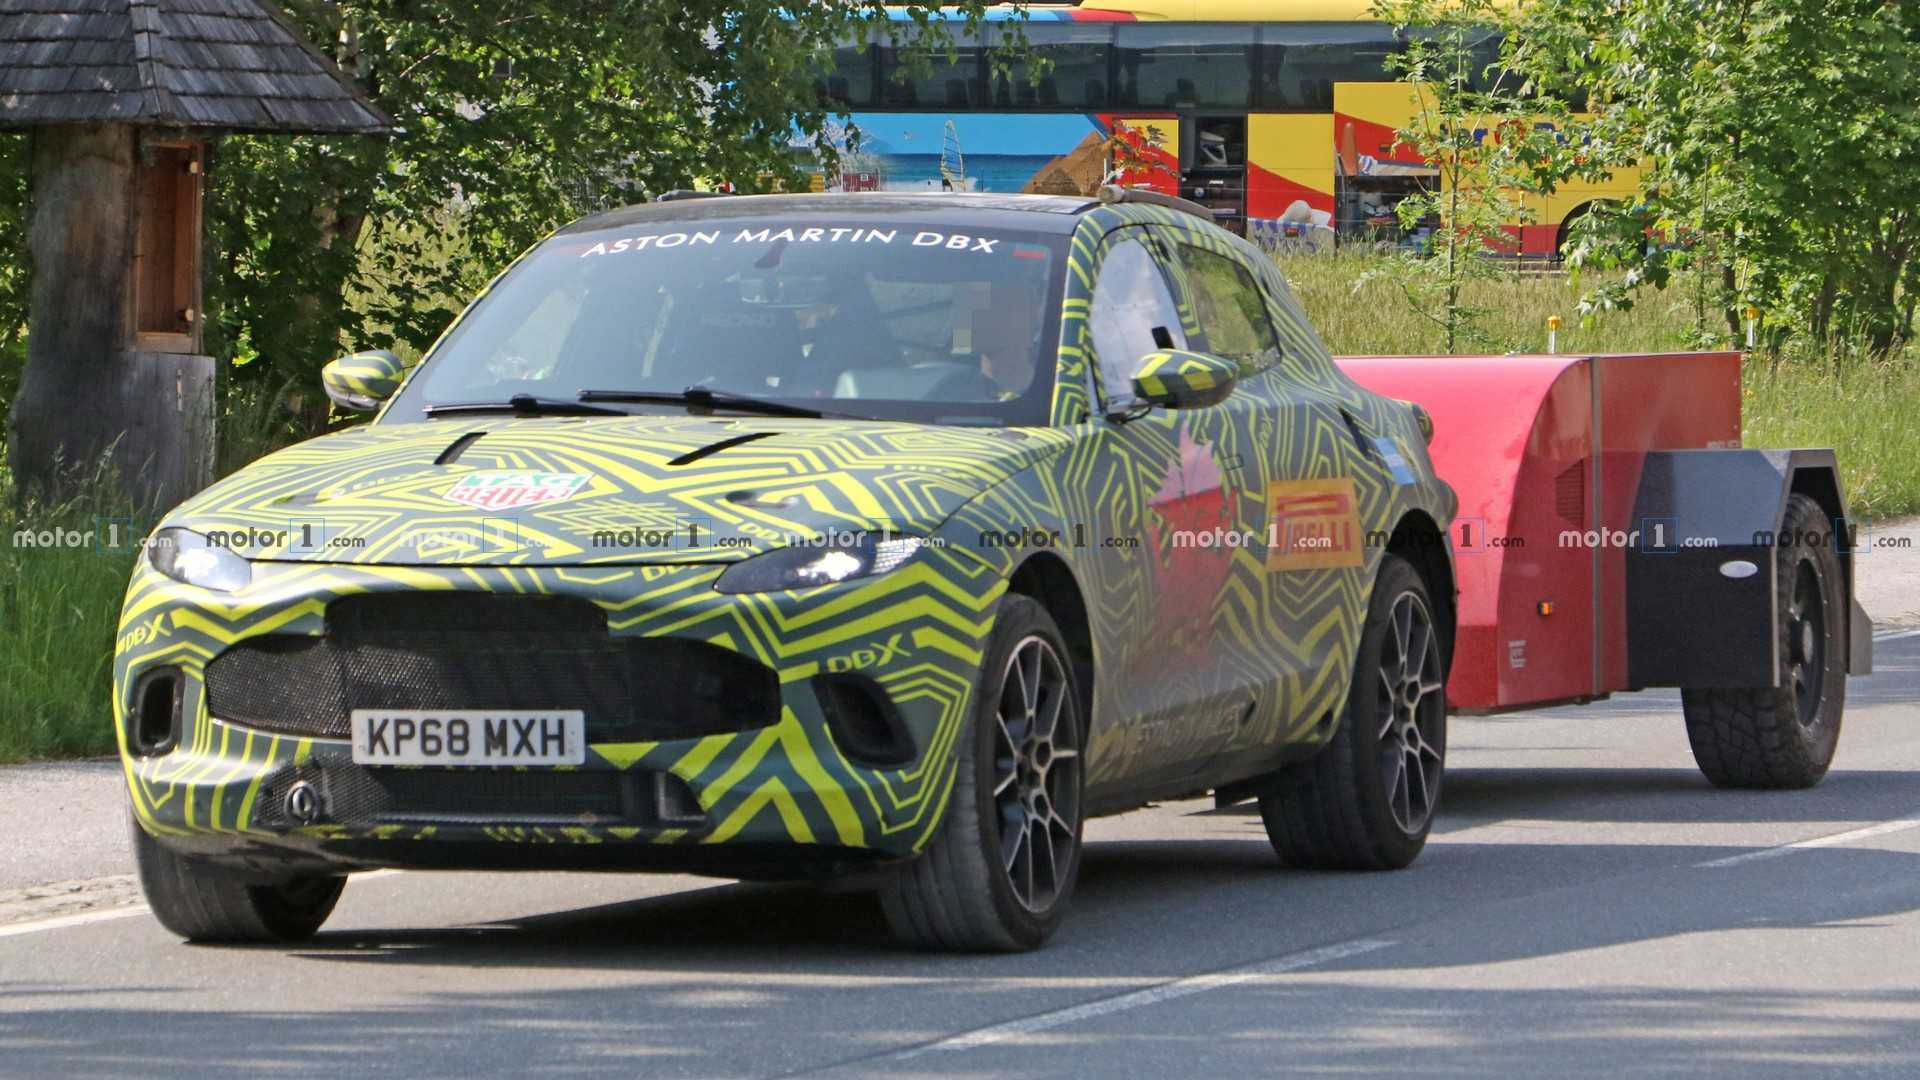 Aston Martin DBX SUV Concept: Design, Specs >> Aston Martin Dbx Caught Inside And Out While Towing